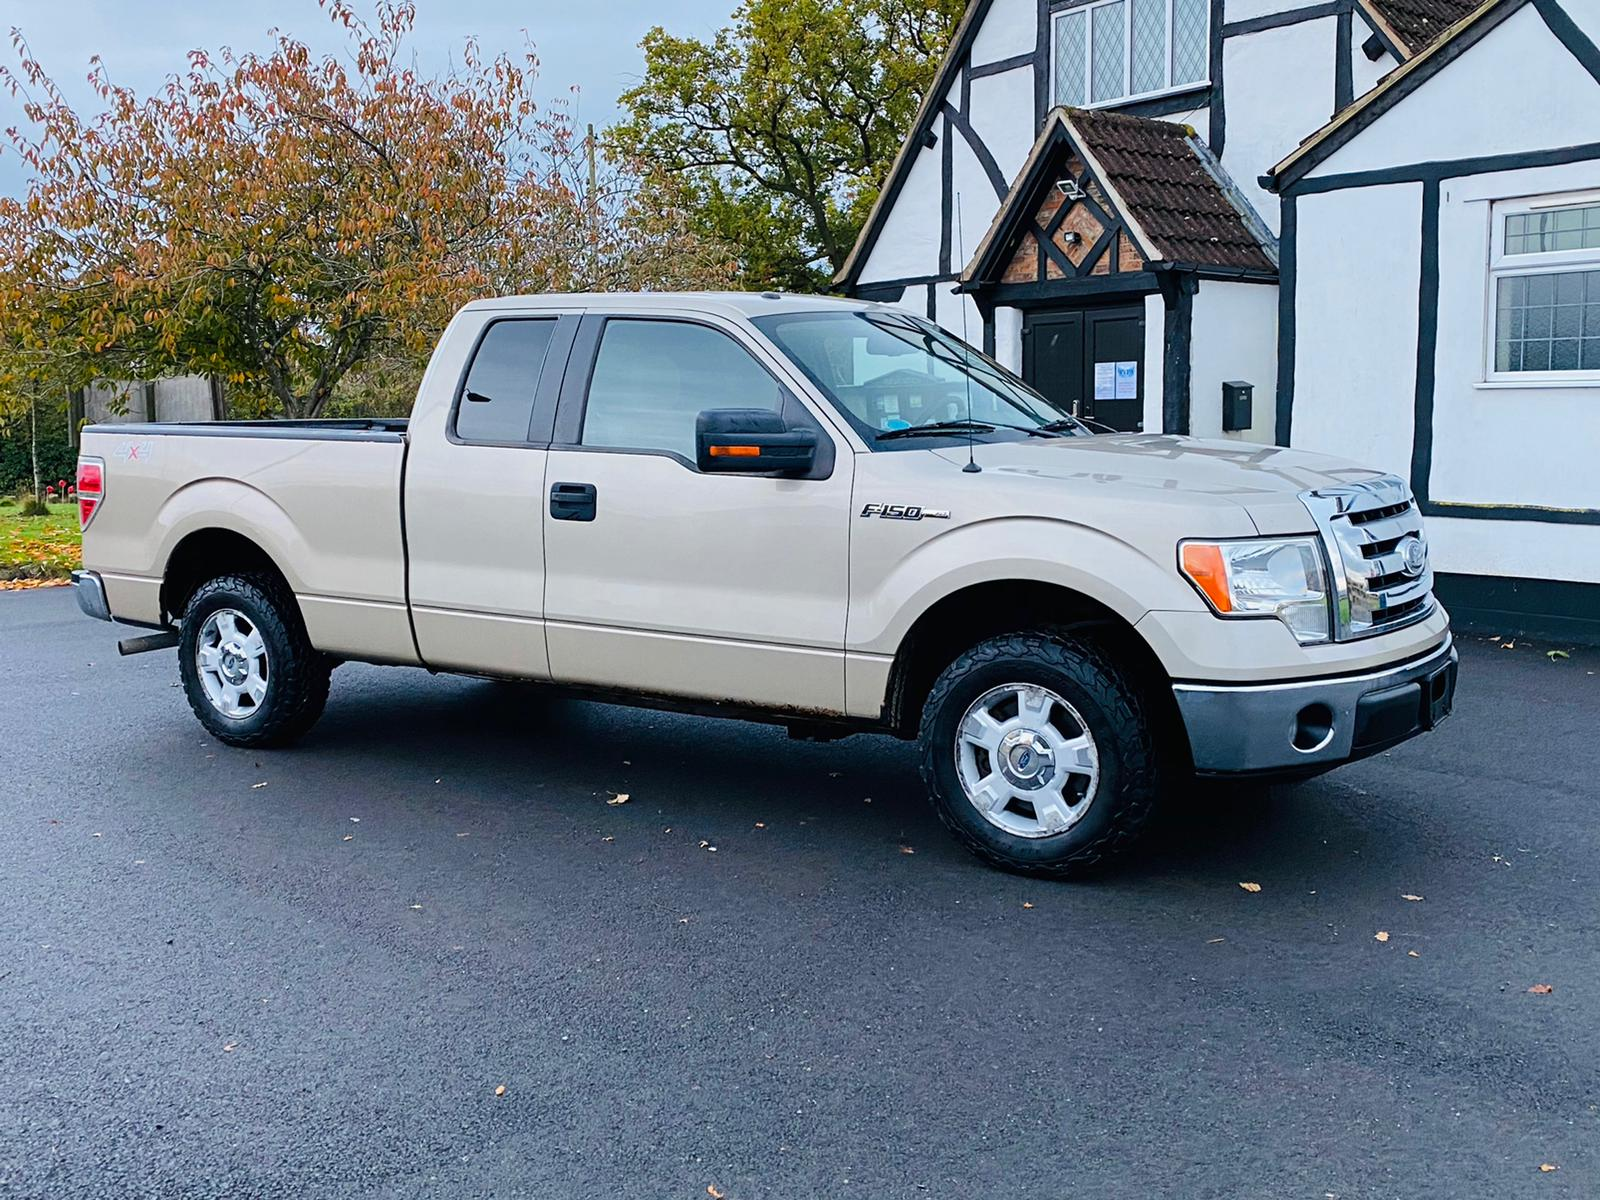 (RESERVE MET) Ford F-150 XLT 4.6L V8 Supercab - 2010 Year - 6 Seats - Fresh Imports - Image 12 of 39